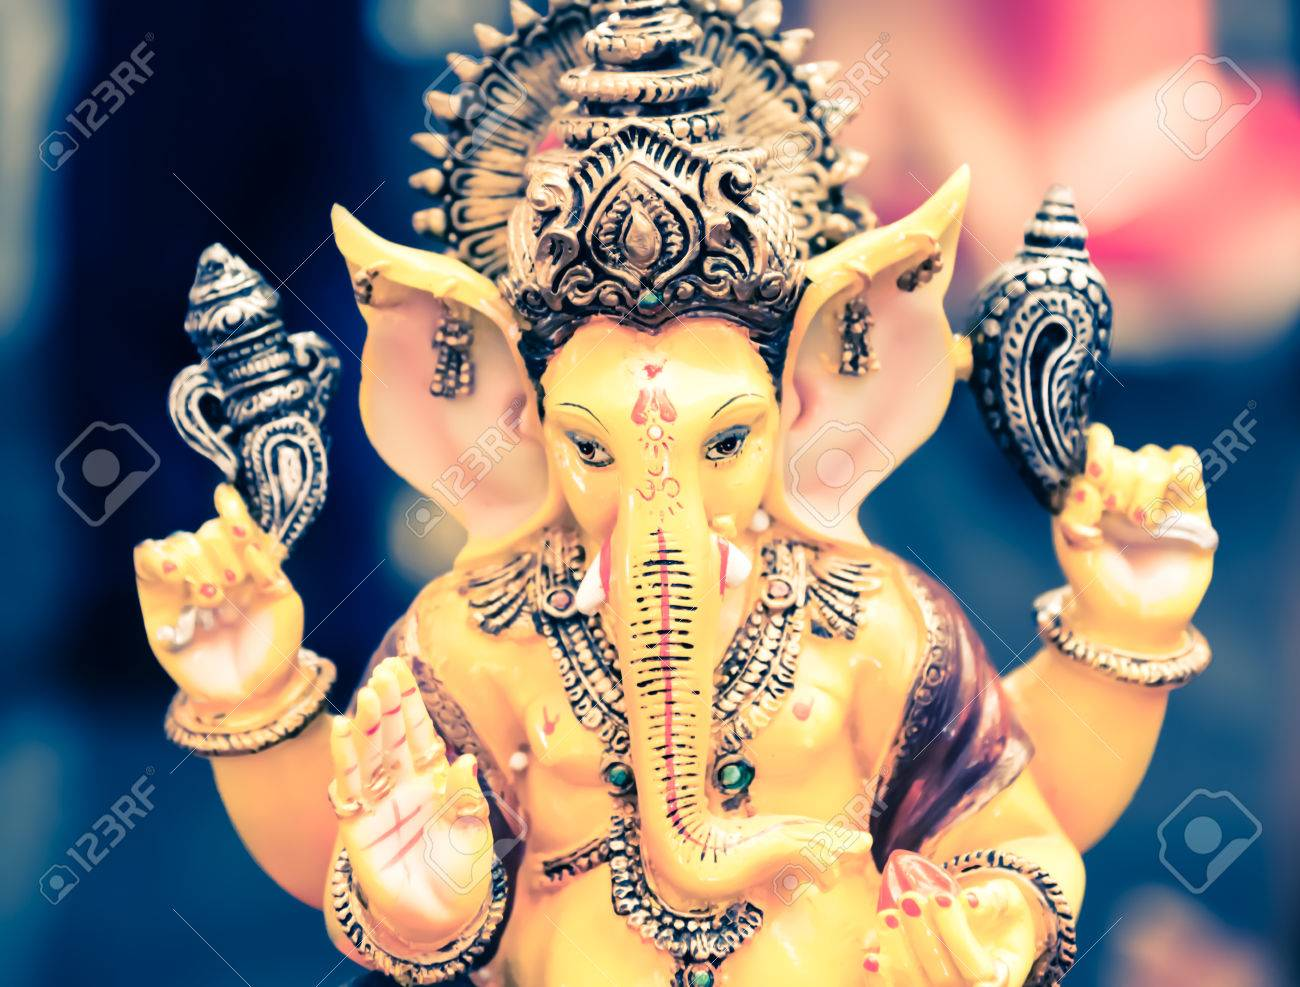 Yellow Ganesh Elephant Hindu God Statue Closeup Focused For Rich Stock Photo Picture And Royalty Free Image Image 46072136